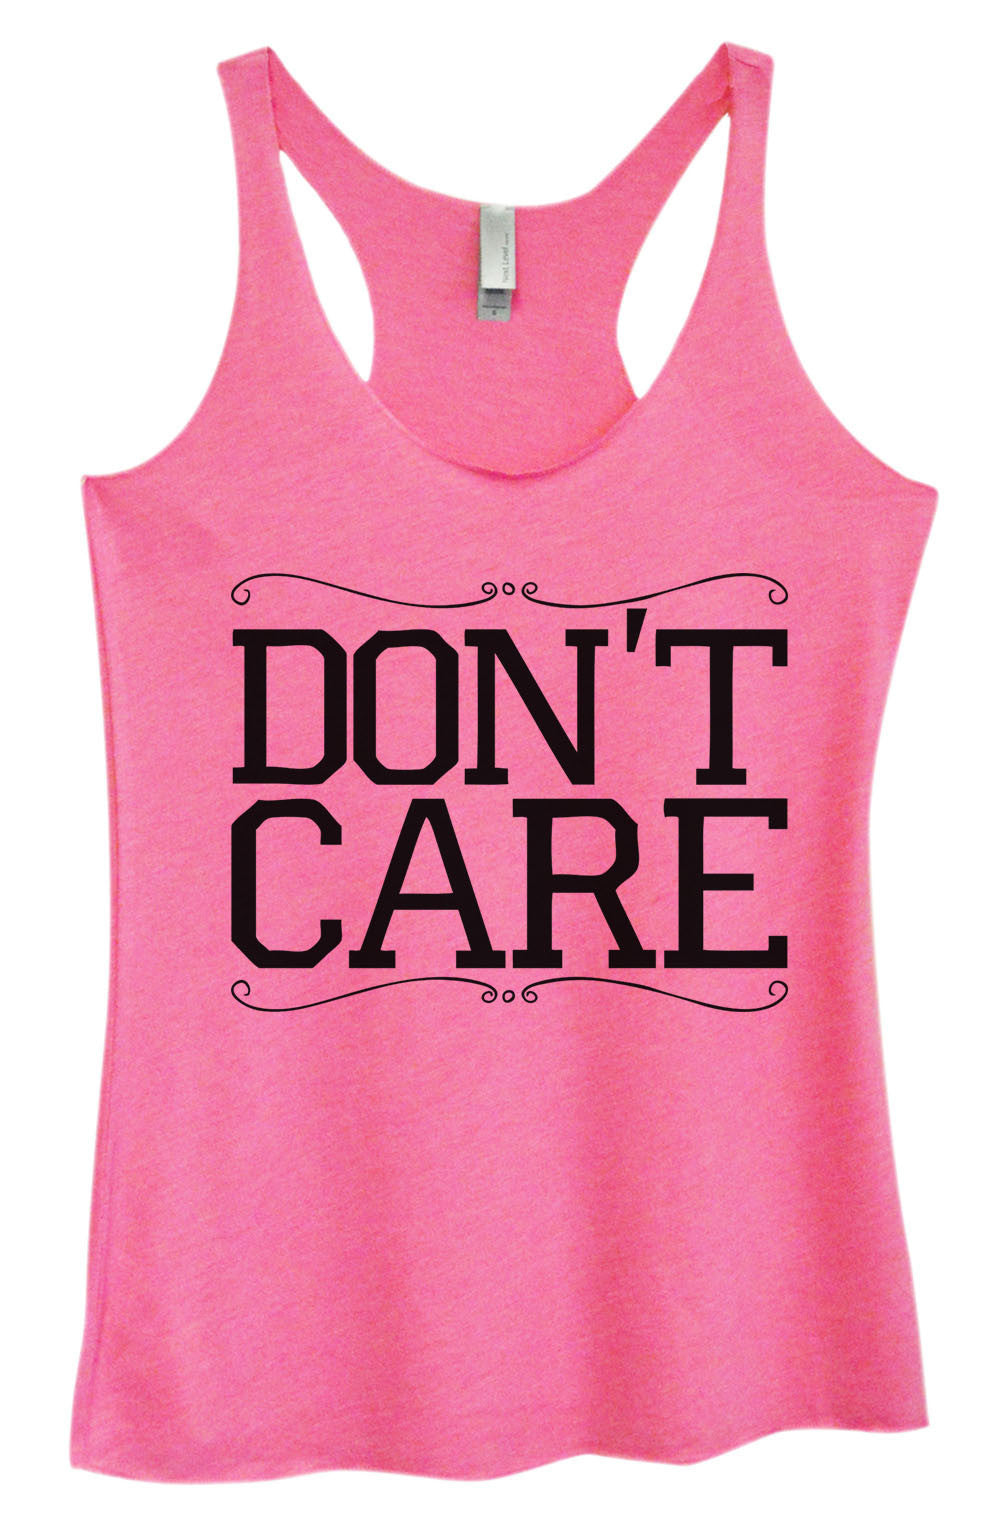 Womens Fashion Triblend Tank Top - Don't Care - Tri-999 - Funny Shirts Tank Tops Burnouts and Triblends  - 3